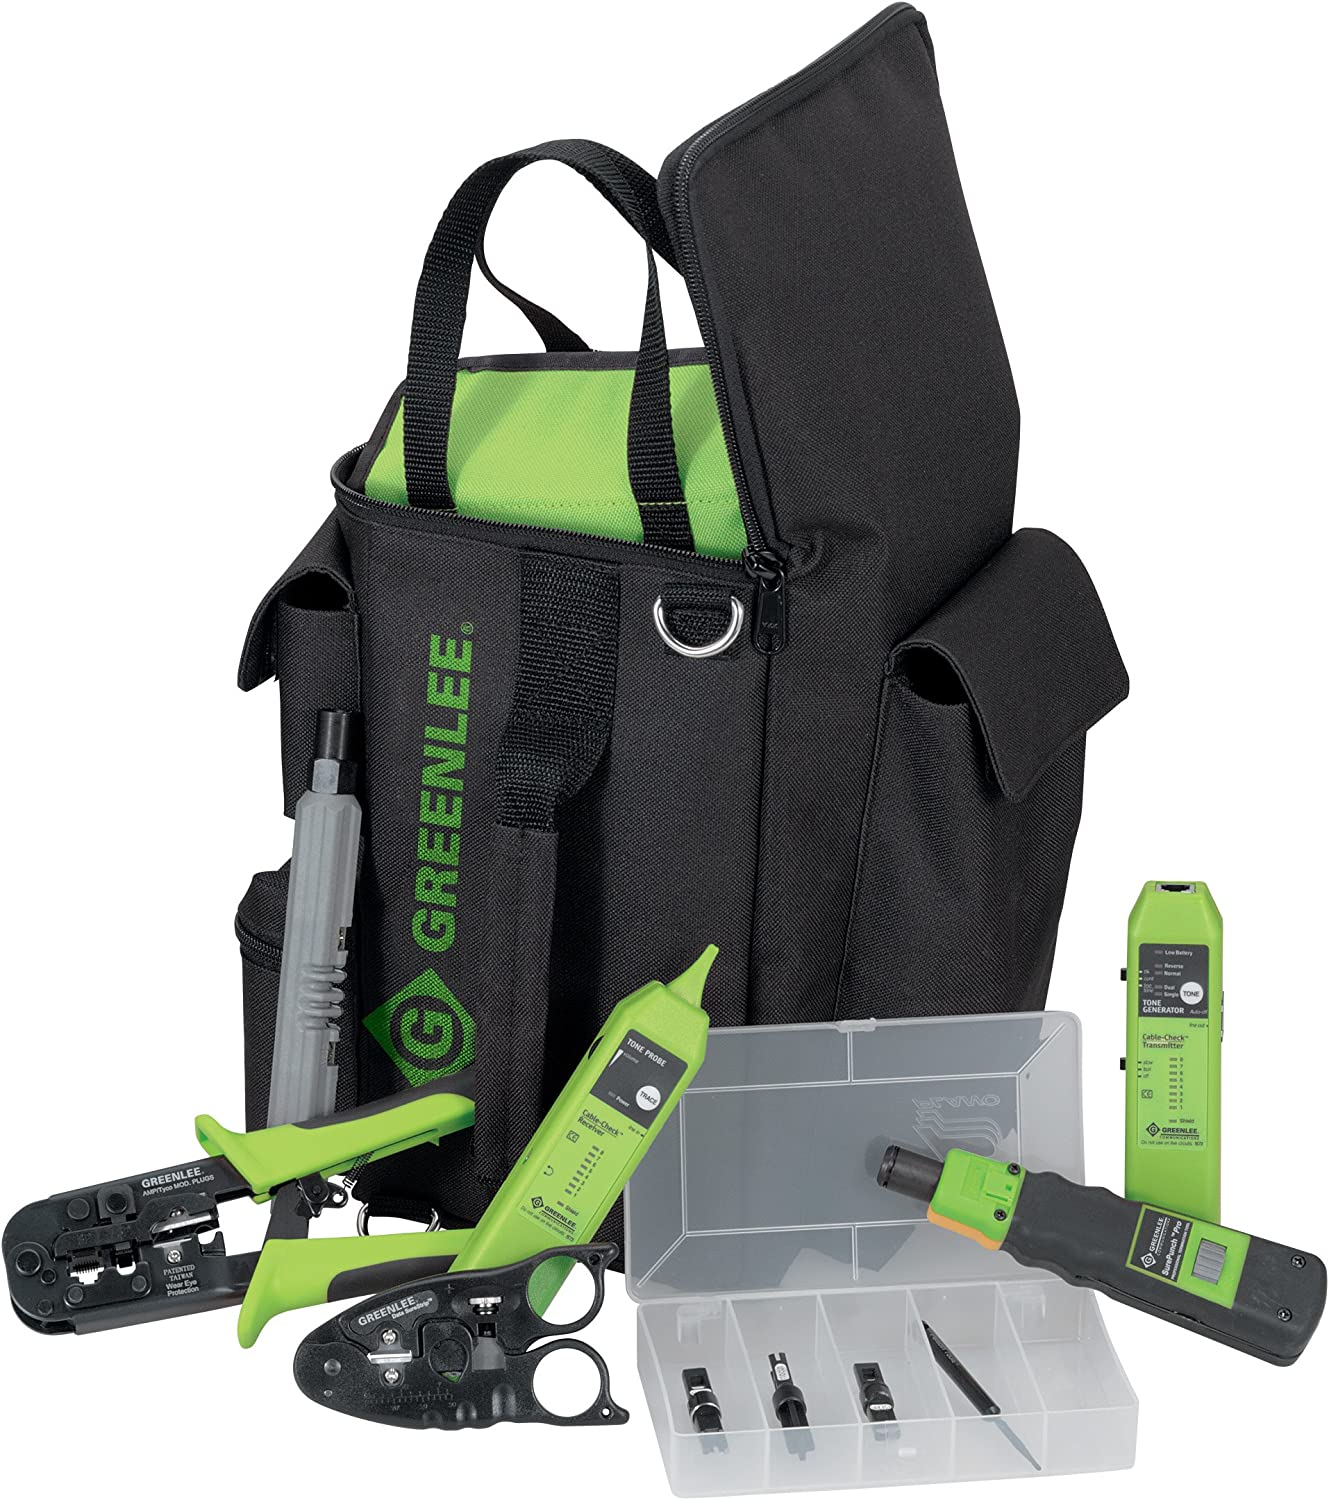 Greenlee PA4941 Durable GripPack SurePunch Professional Technician/'s Kit